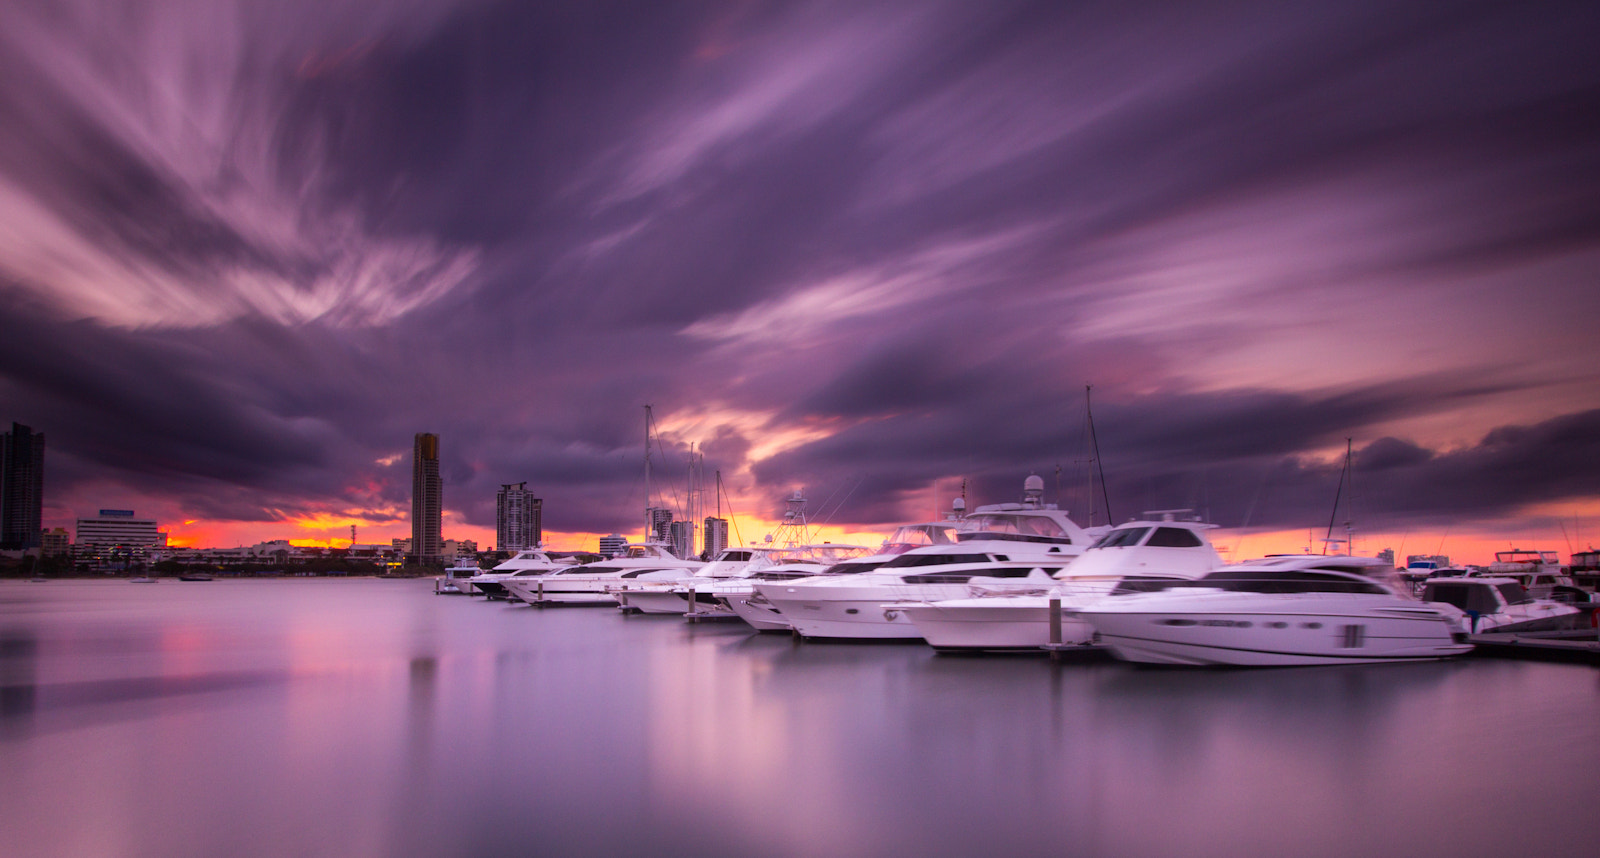 Photograph Marina views by Daniel Treadwell on 500px